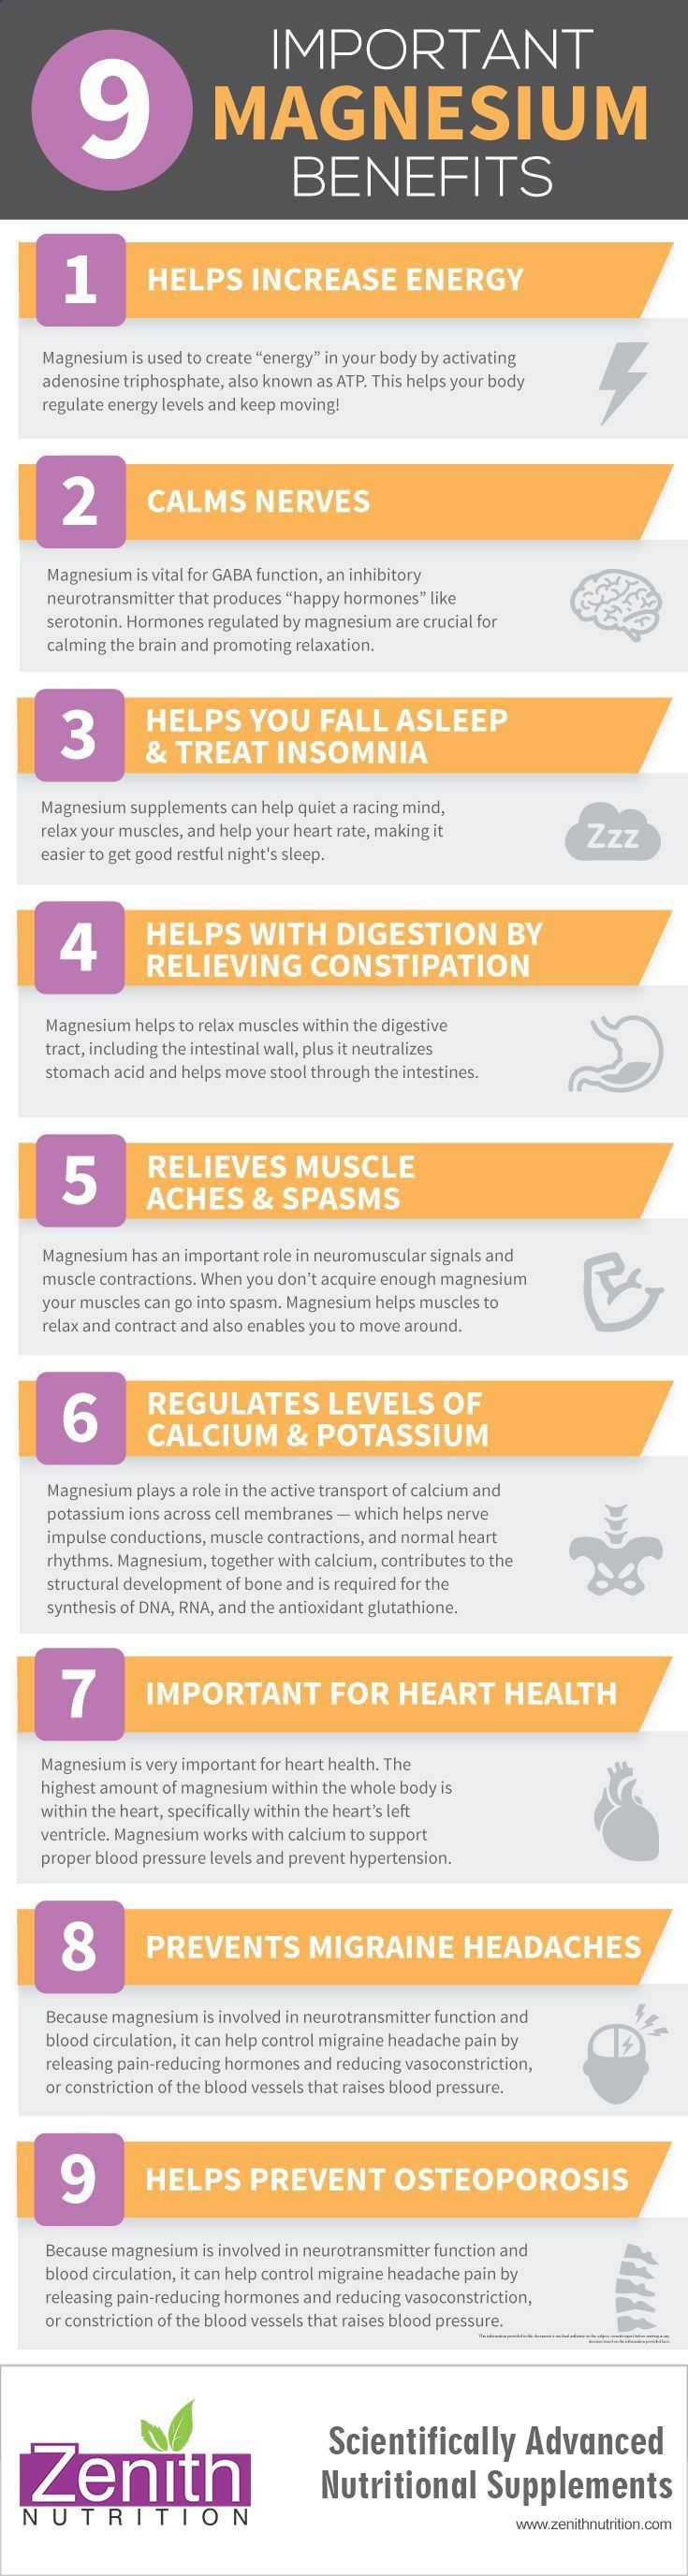 Important Magnesium Benefits. Helps increase energy, Calms nerves, Helps you fall asleep and treat insomnia, helps with digestion by relieving constipation, relieves muscle aches and spasms, regulates levels of Calcium Potassium important for heart health, prevents migraine, head aches, helps prevents Osteoporosis. Best supplements from Zenith Nutrition. Health Supplements. Nutritional Supplements. Health Infographics